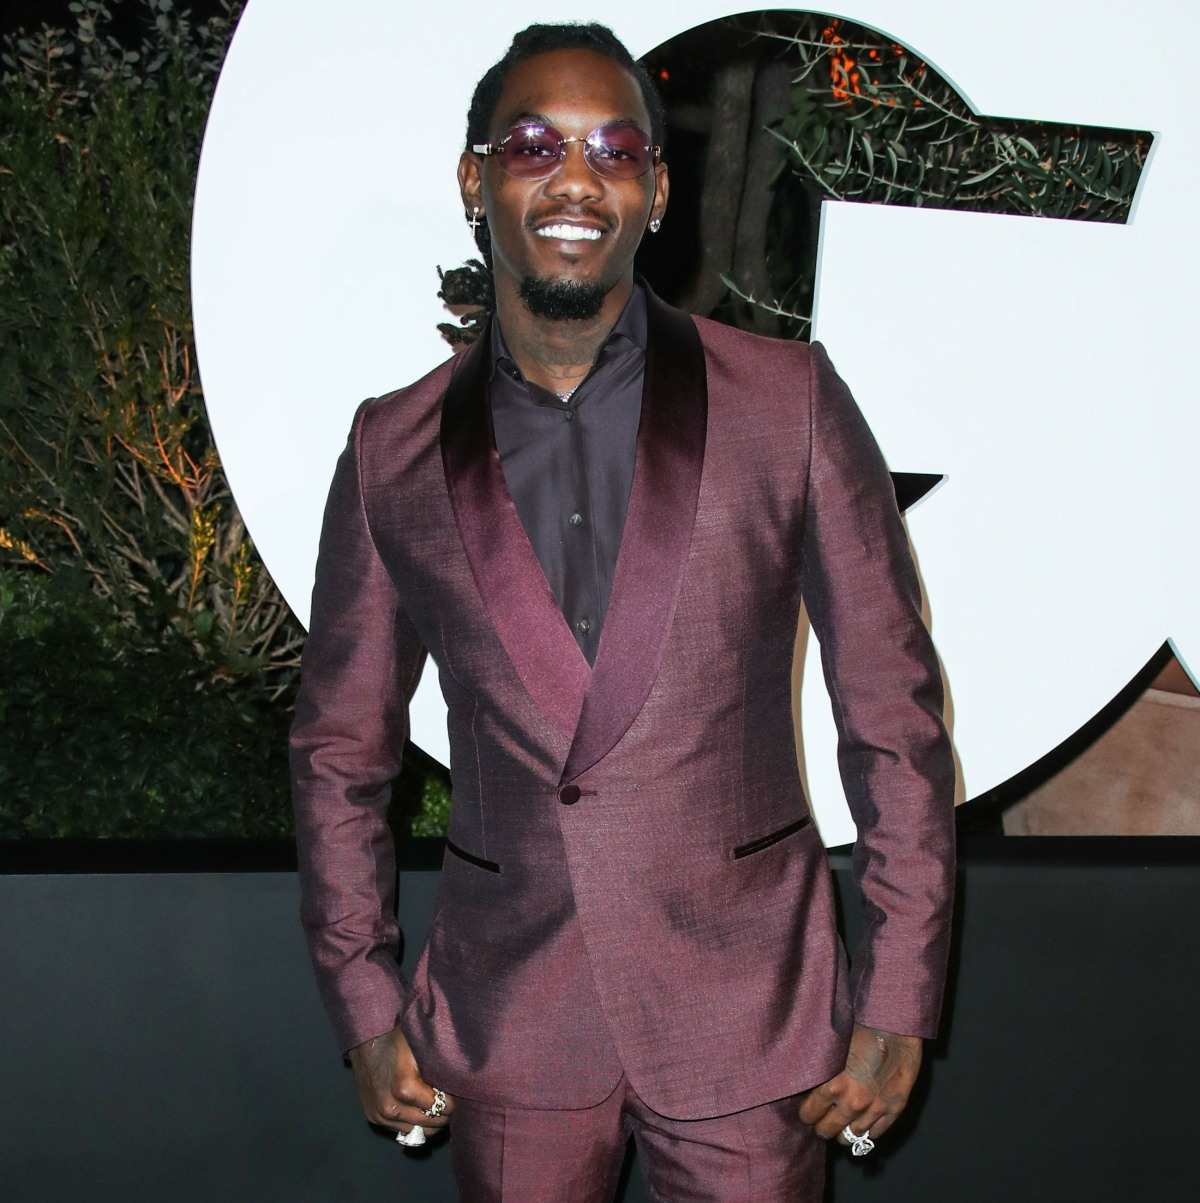 Rapper Offset arrives at the 2019 GQ Men Of The Year Party held at The West Hollywood EDITION Hotel on December 5, 2019 in West Hollywood, Los Angeles, California, United States.